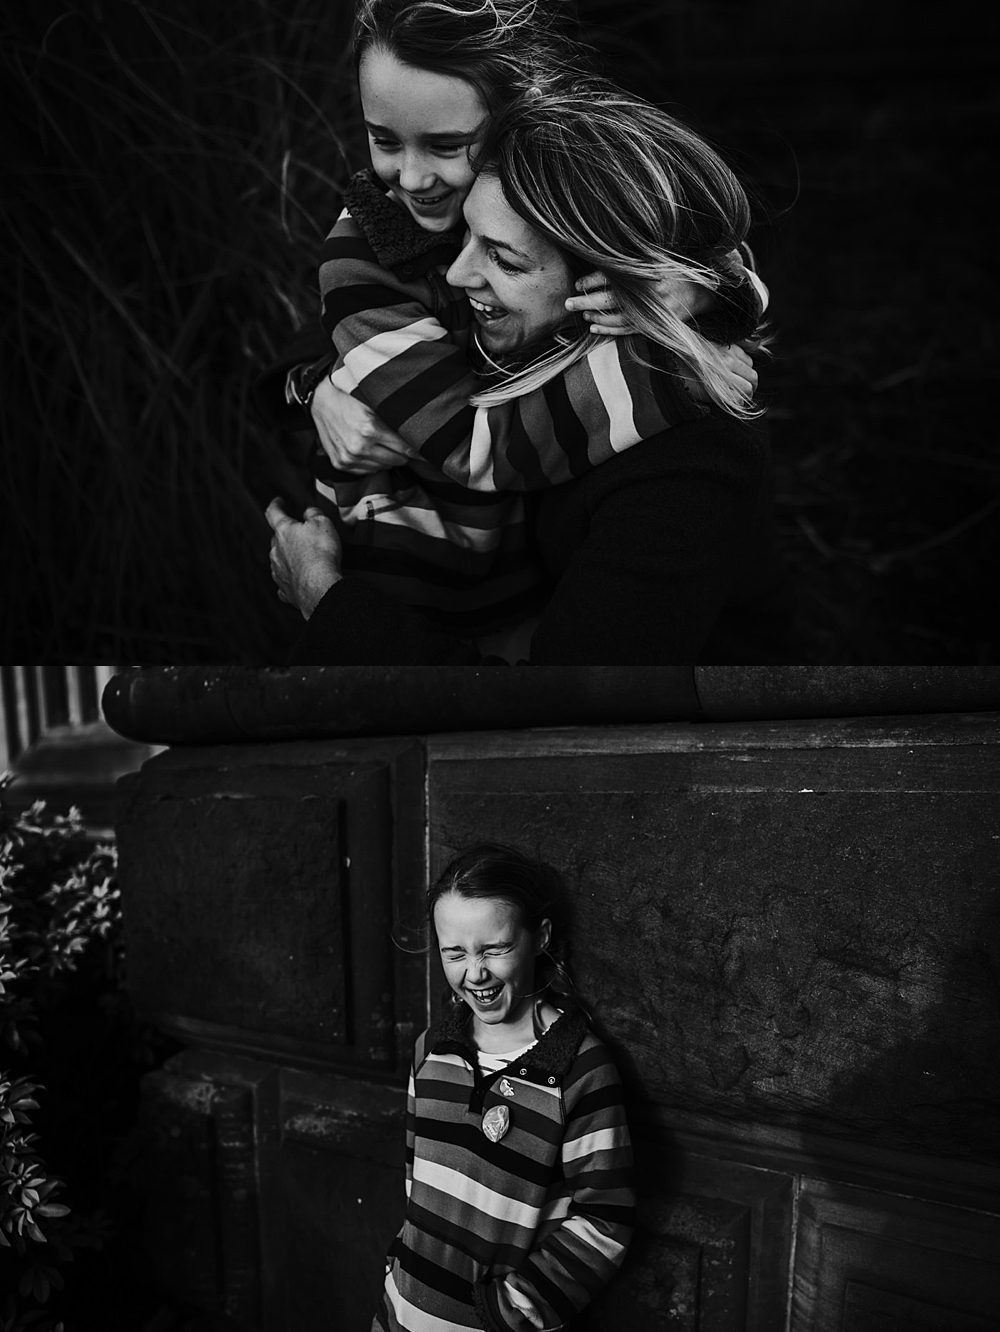 Family photographers Glasgow,The Gibsons,creative family photography glasgow,family photographers scotland,family photos,motherhood photo session,